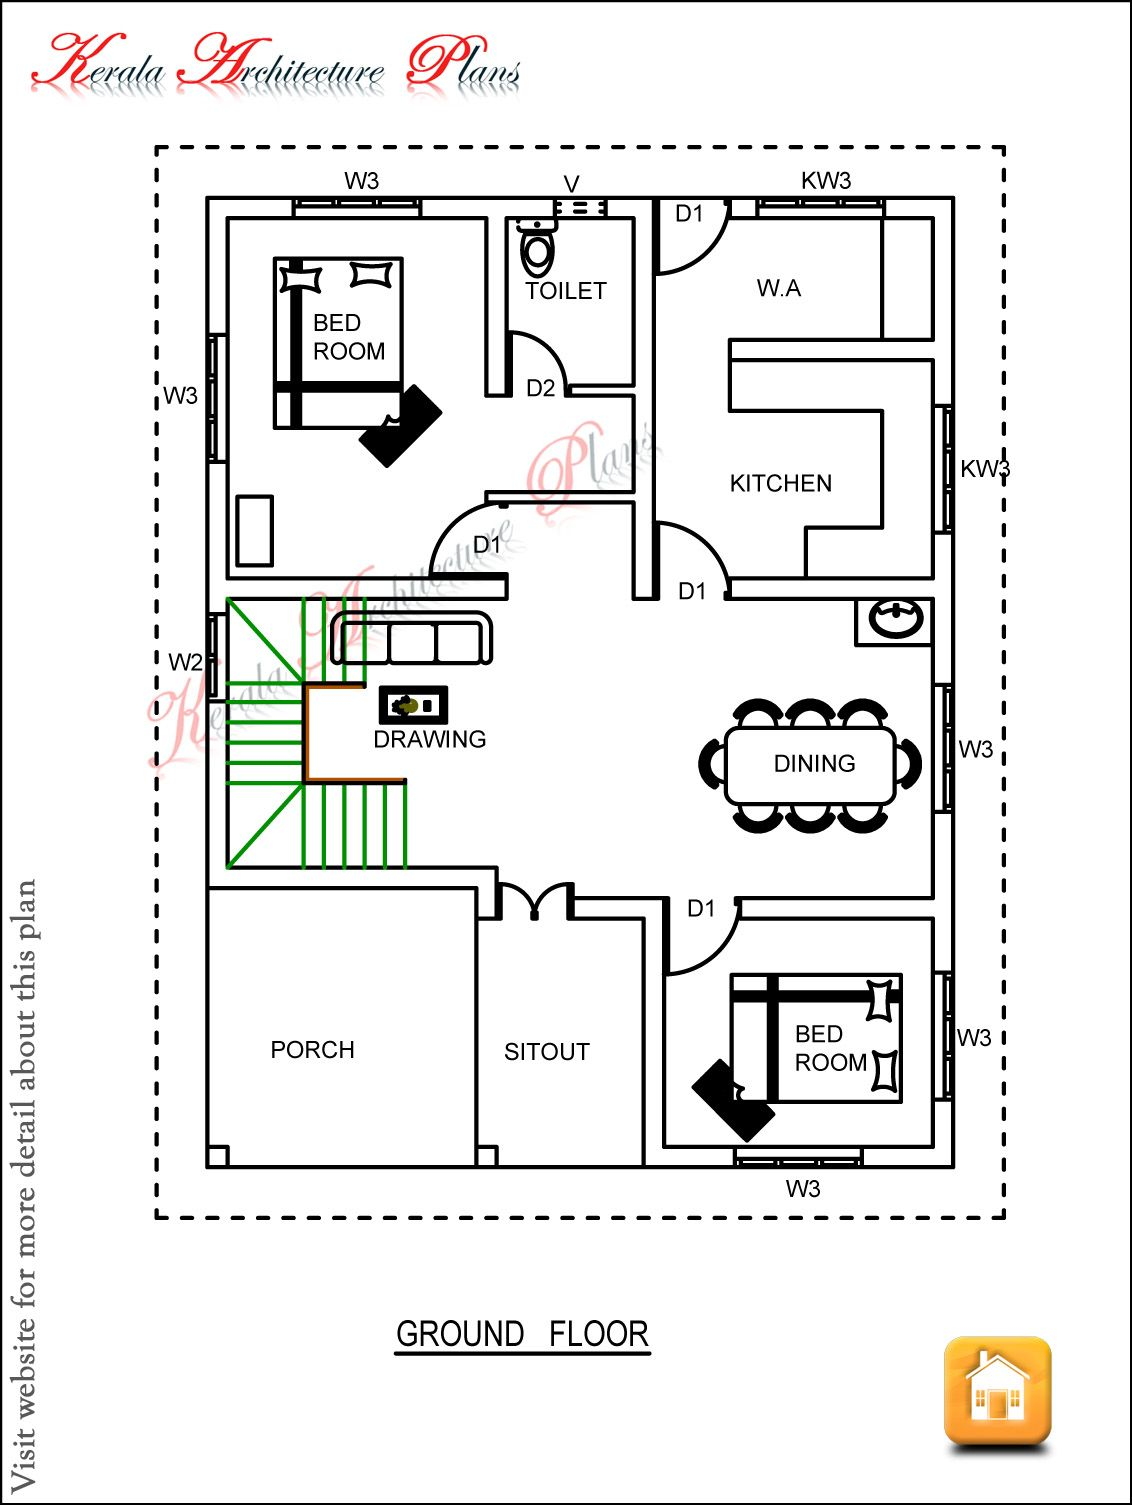 3 Bedroom Houses For Rent In Cleveland Ohio West Side: Marvelous Idea Architectural House Plans Kerala 3 THREE